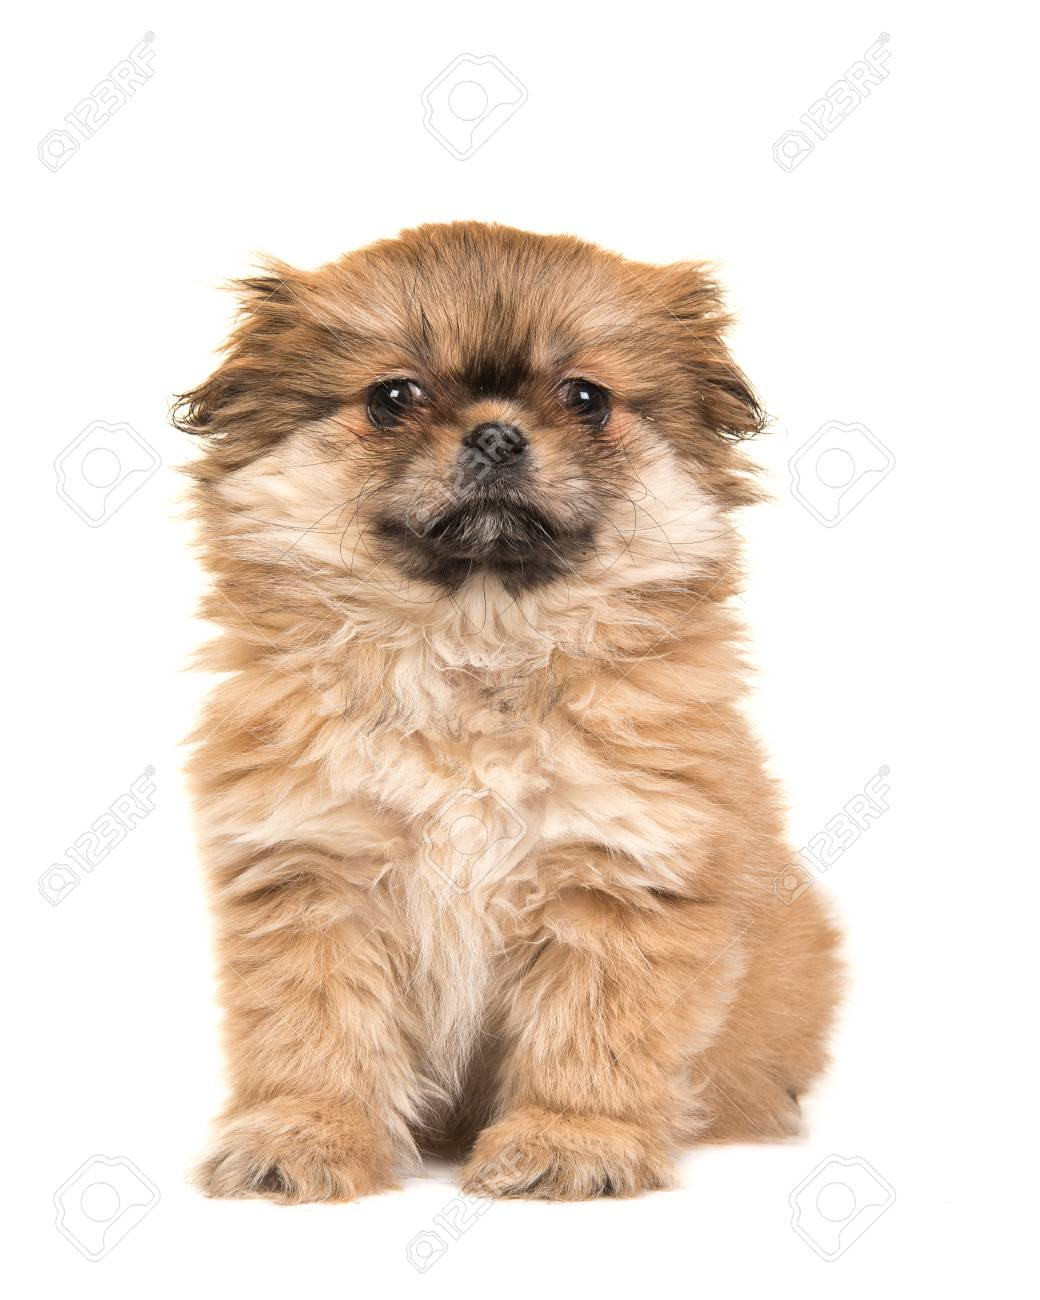 Cute Sitting Fluffy Tibetan Spaniel Puppy Facing The Camera Isolated Stock Photo Picture And Royalty Free Image Image 71799781